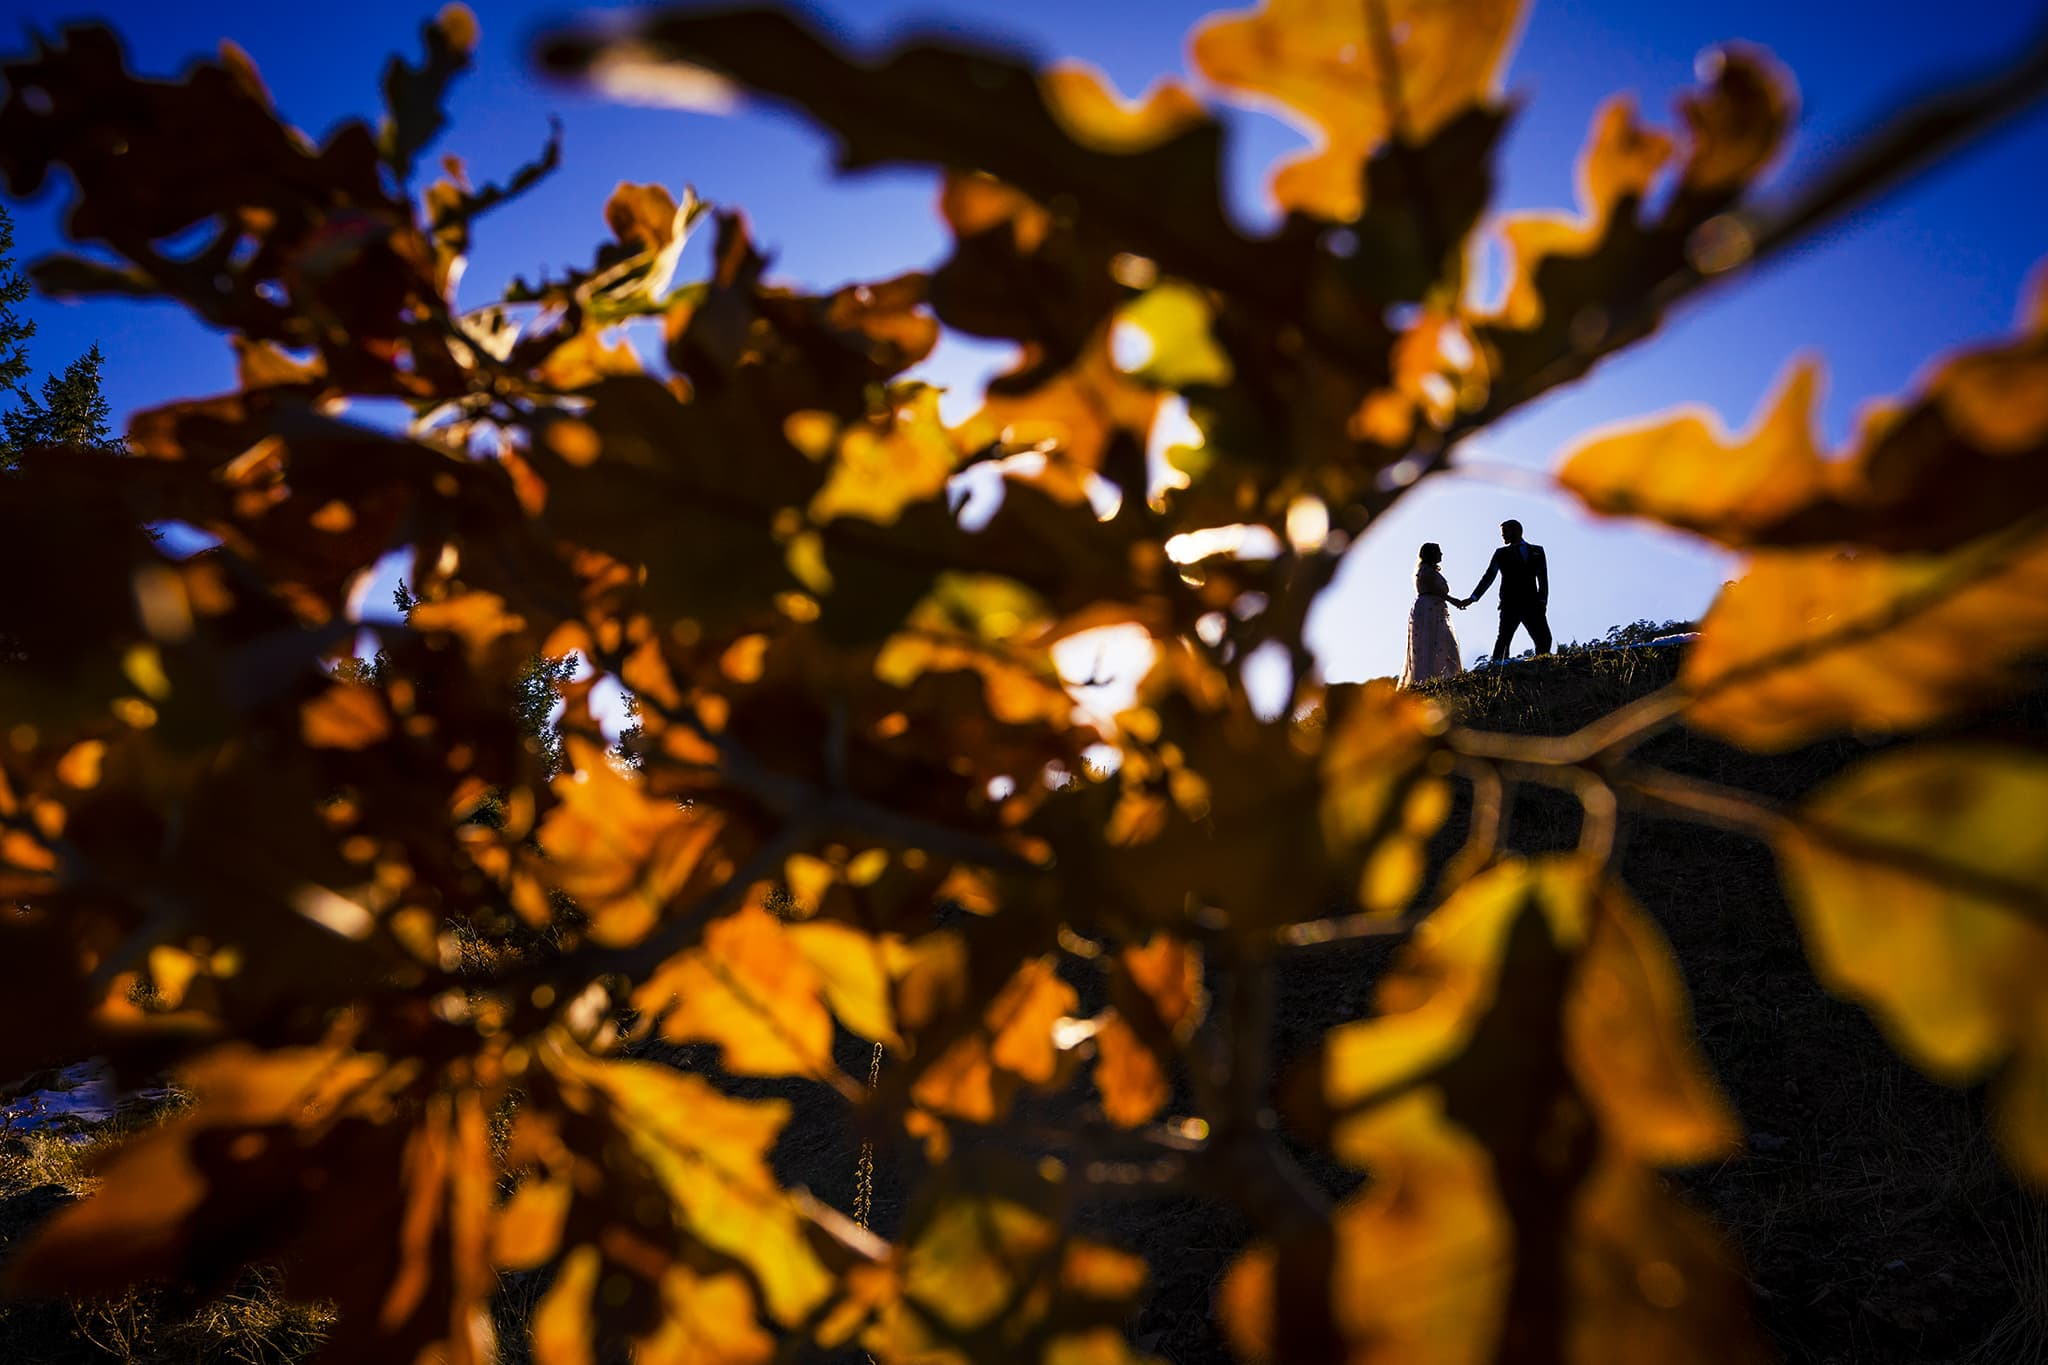 Silhouette of bride and groom through tree leaves